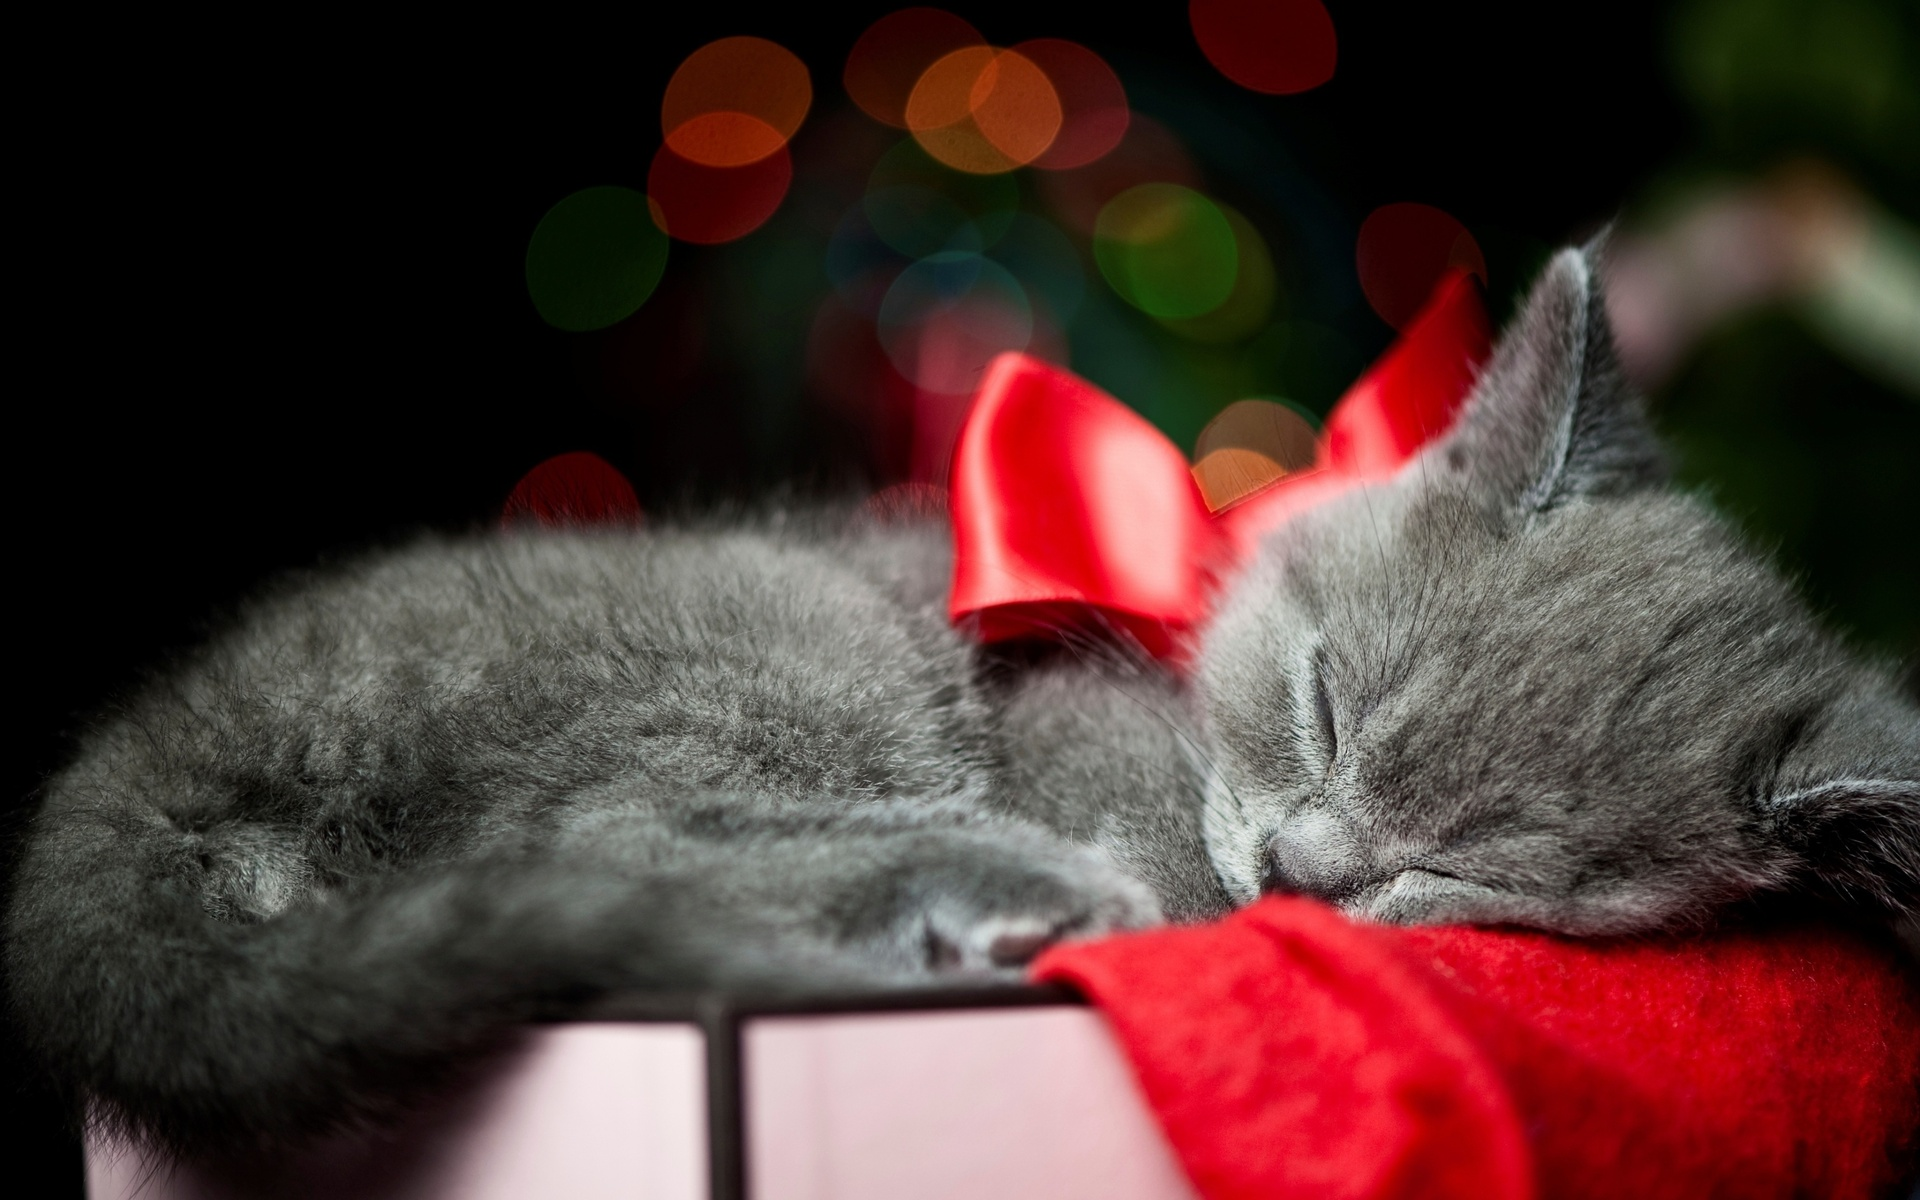 christmas bow red animals cats kittens whiskers sleep cute wallpaper 1920x1200